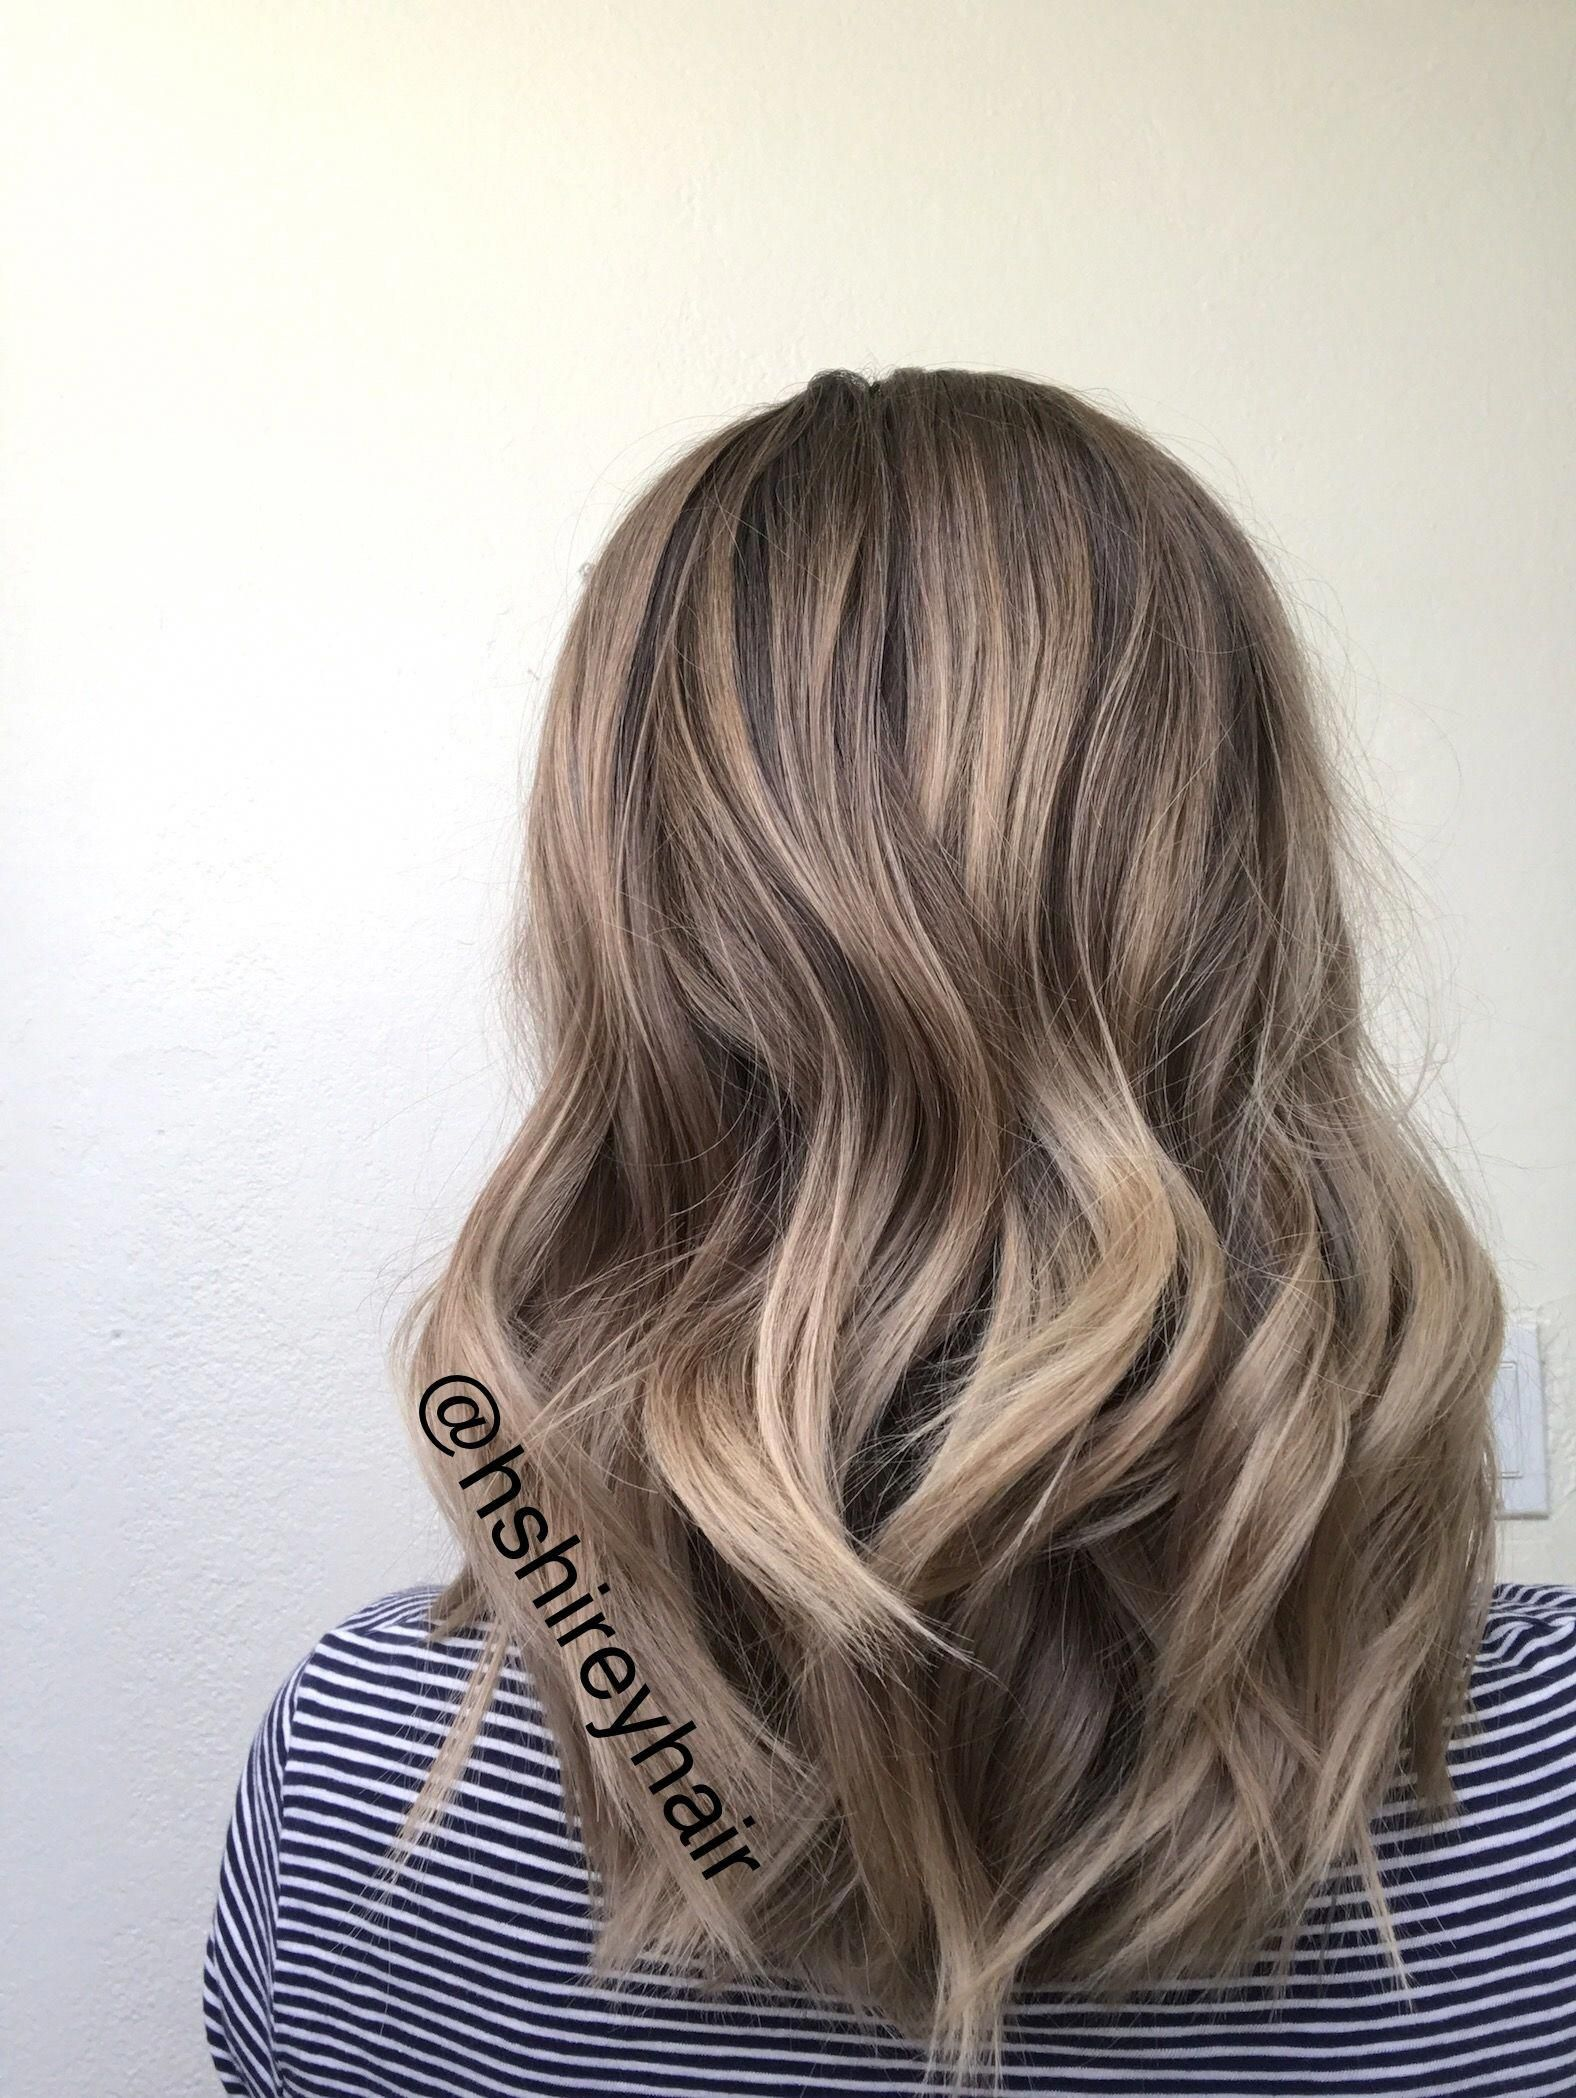 B L O N D E Hair By Amy Hairbyamy Instagram Posts Videos